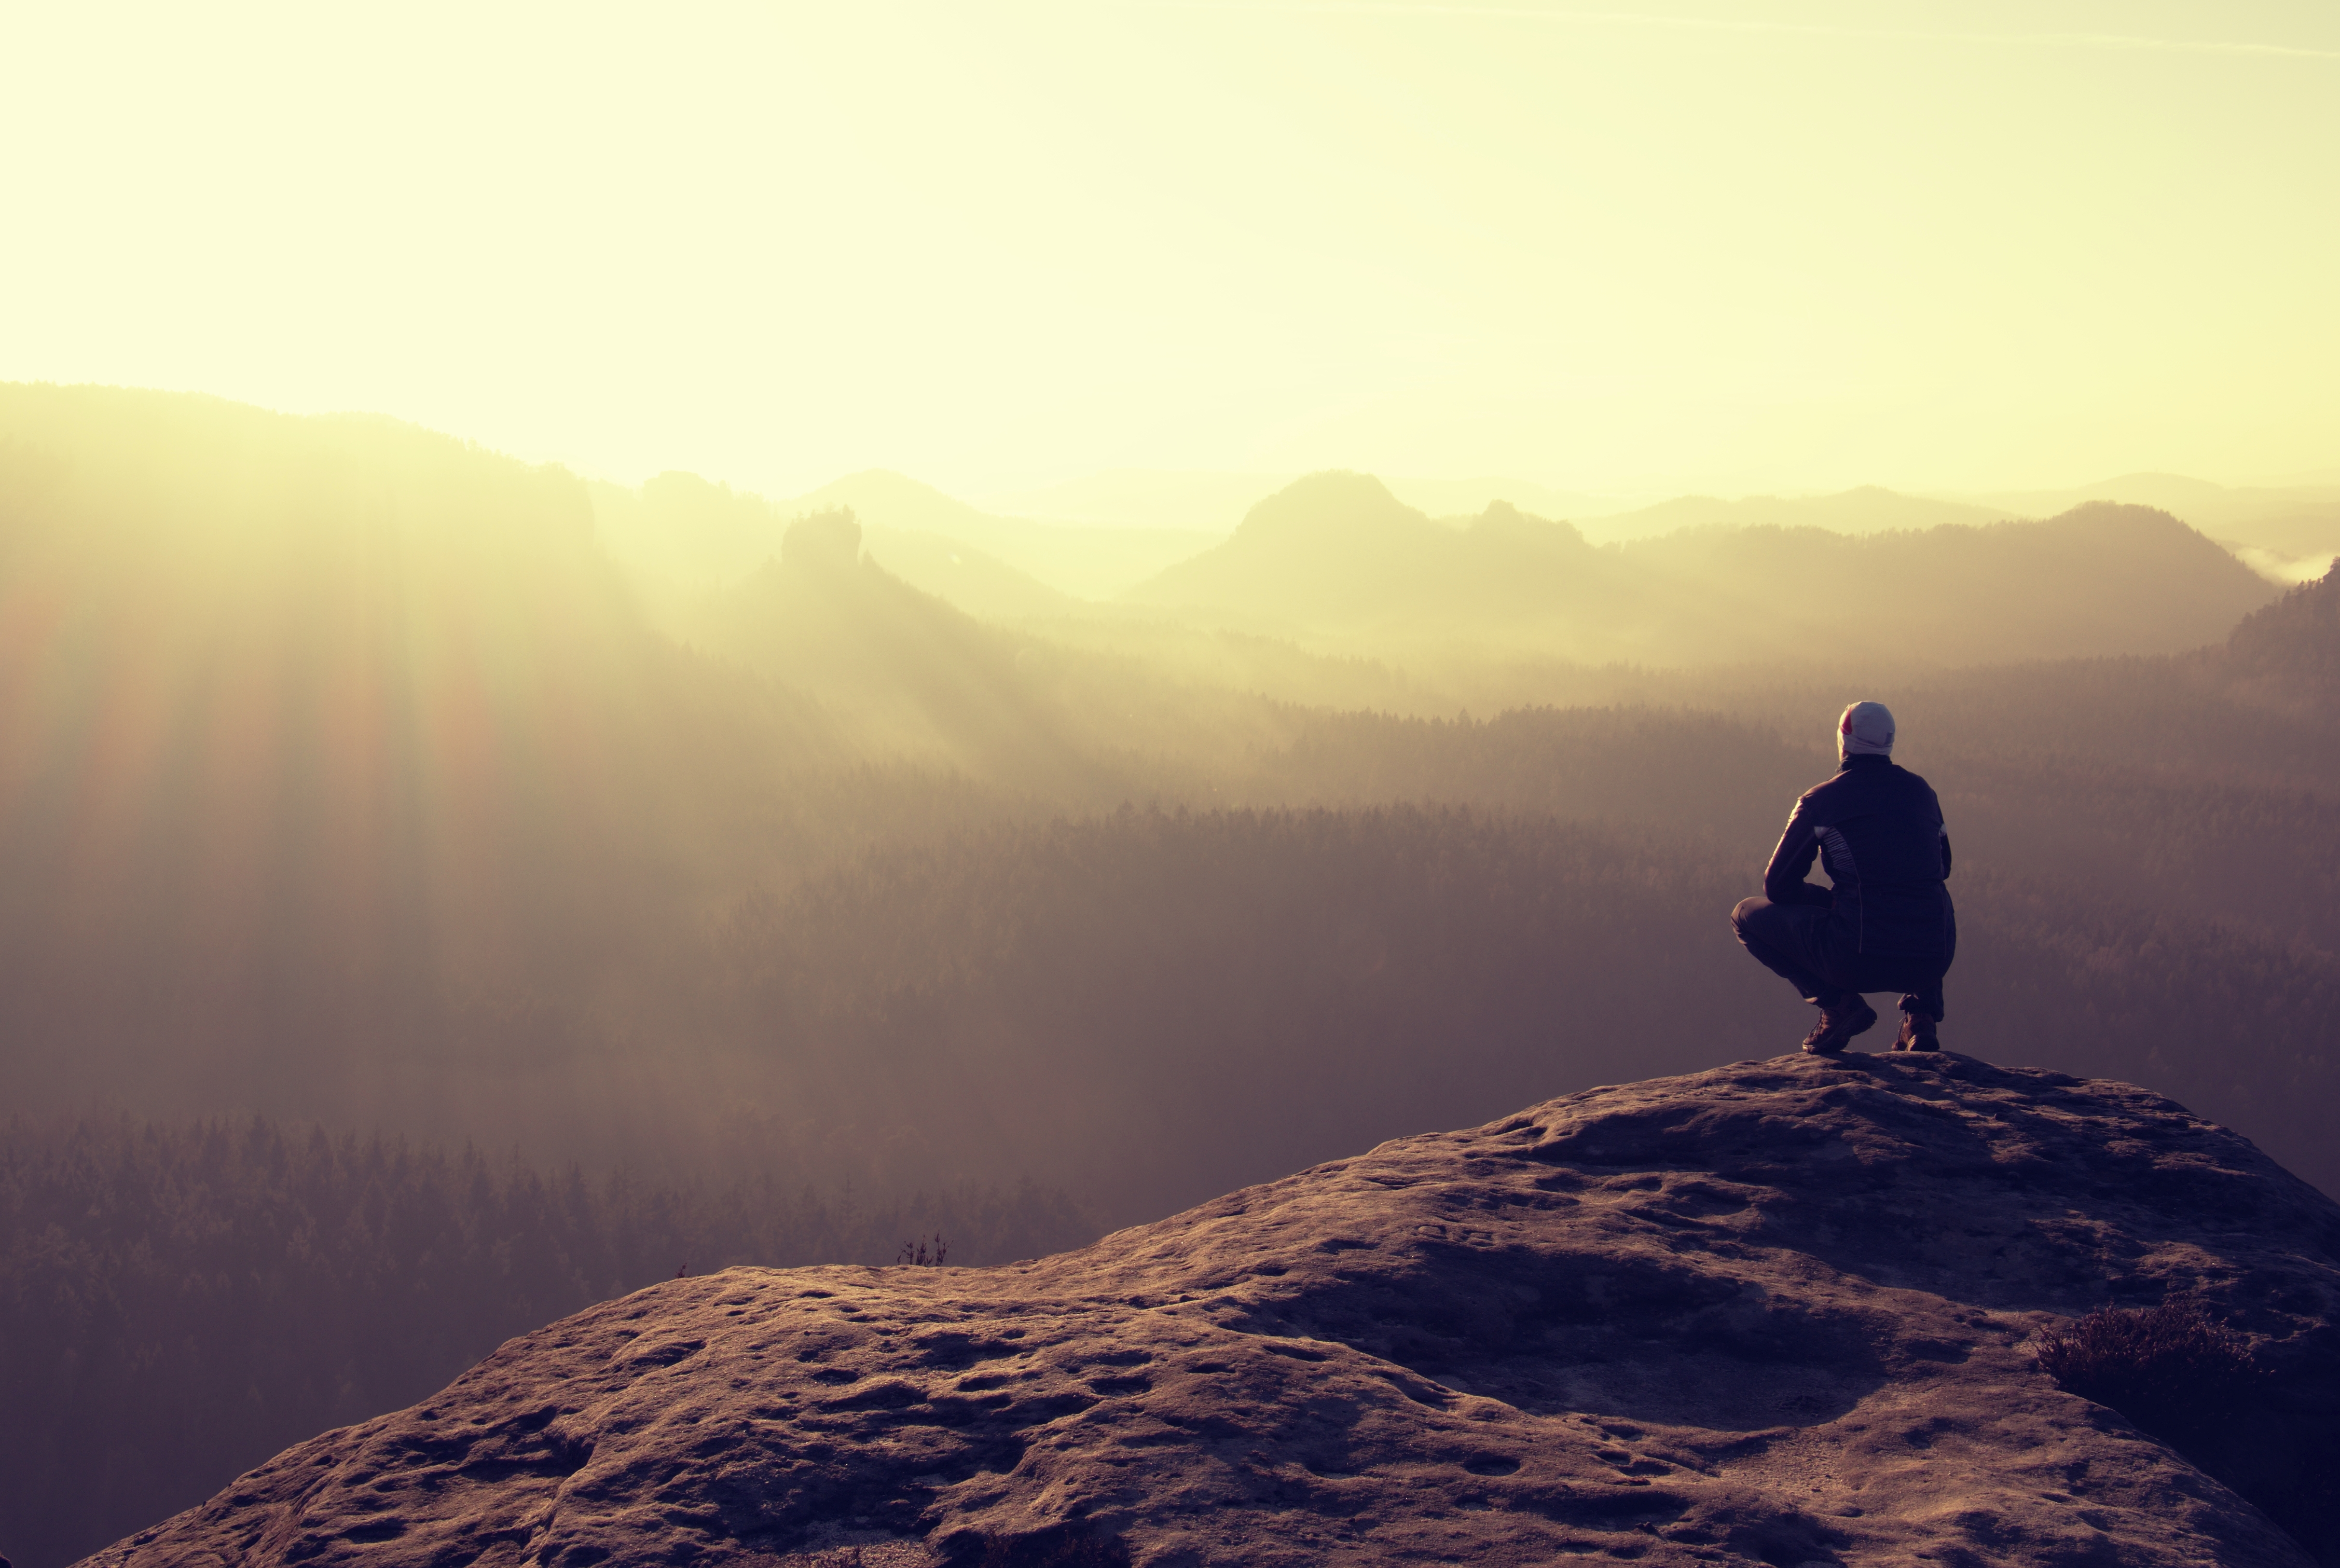 Hiker sits on a rocky peak and enjoy the mountains scenery - Annette Sloly Hypnotherapy